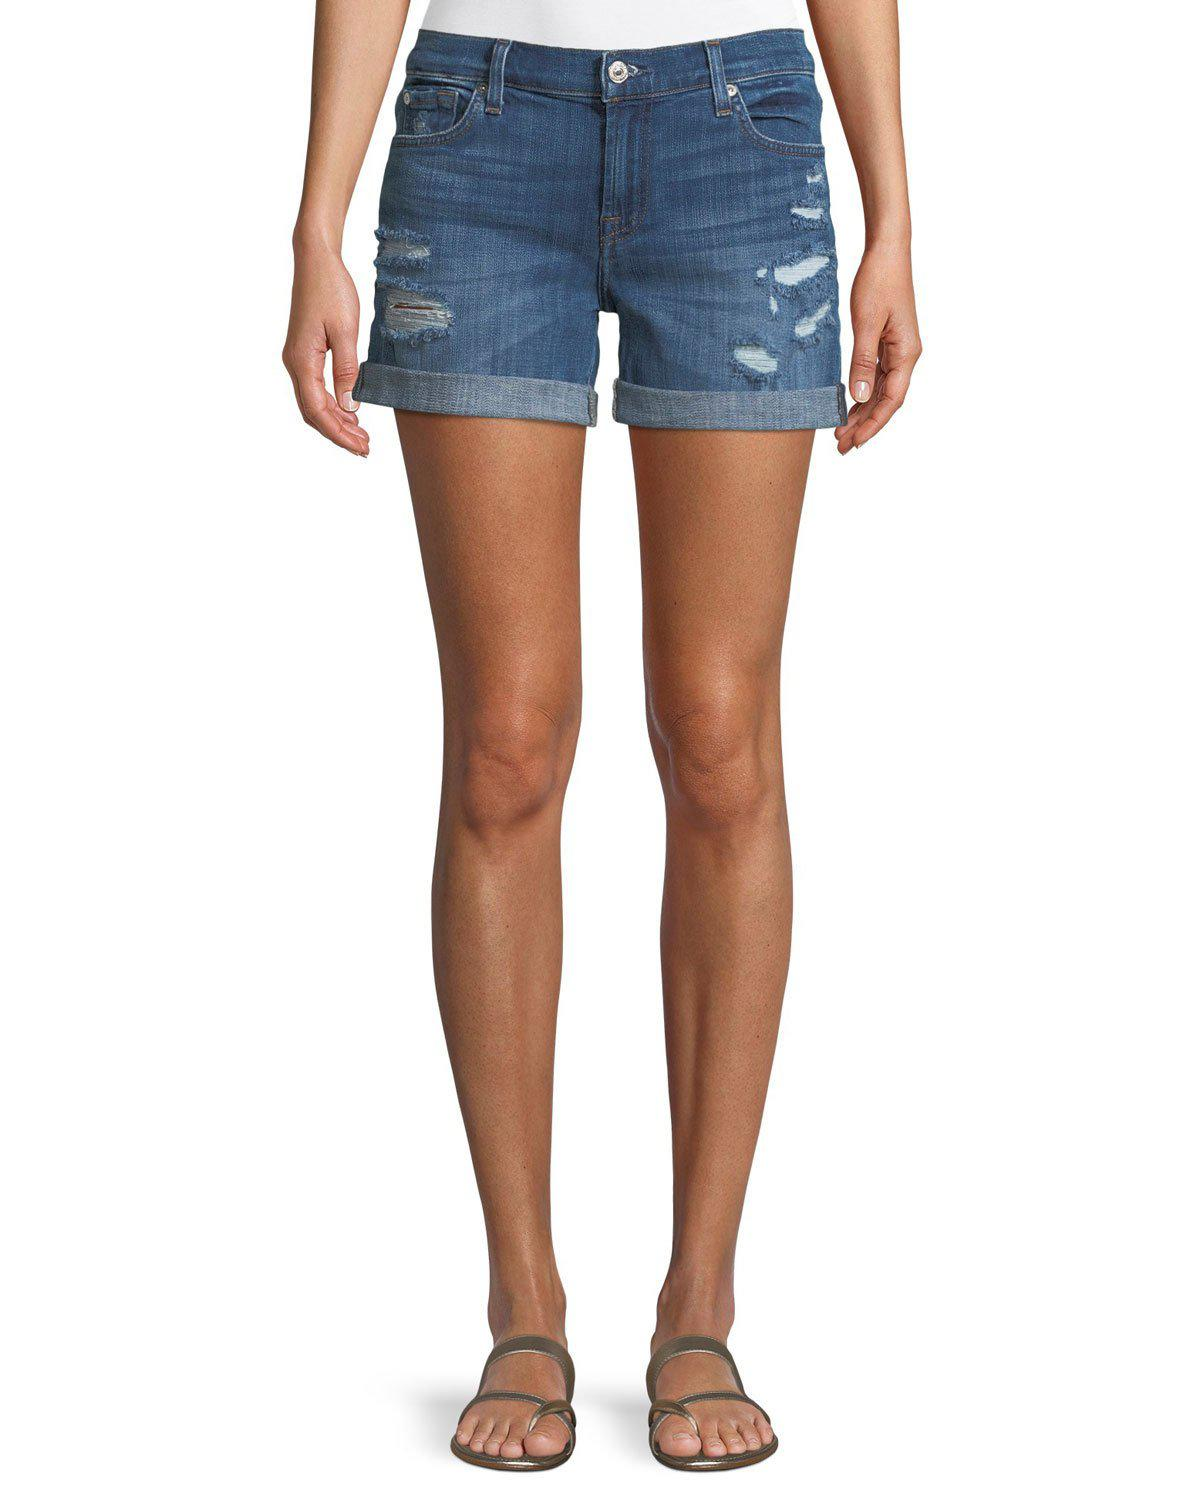 4278b6c2c5 7 For All Mankind. Women's Blue Mid-rise Rolled-cuff Distressed Denim Shorts